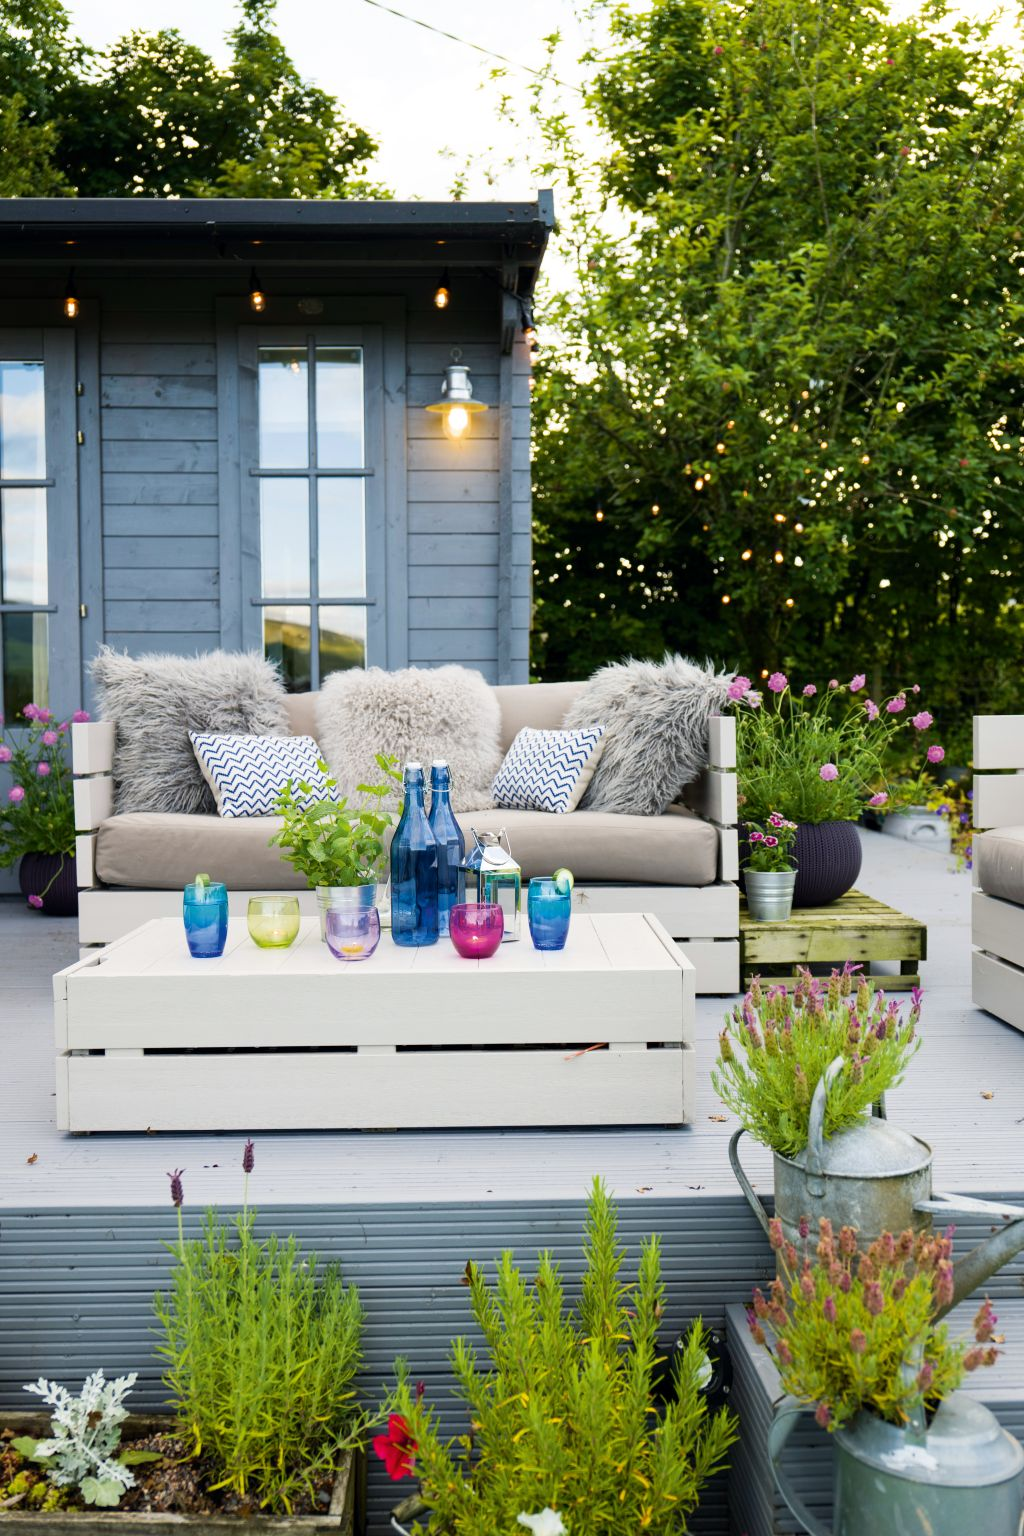 Budget Garden Ideas 28 Brilliantly Cheap Ways To Style Your Outdoor Space This Year Real Homes